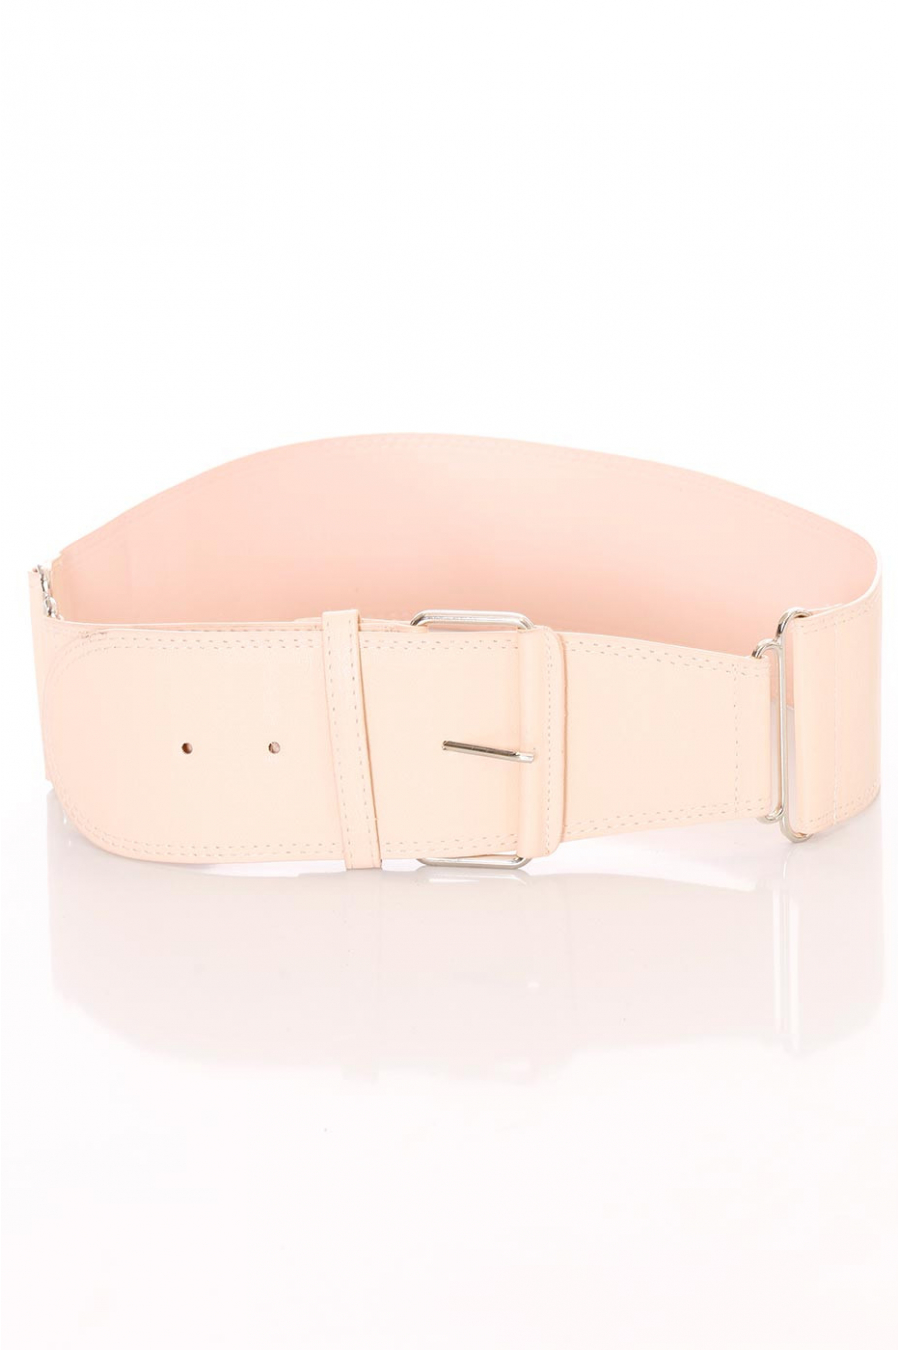 Ceinture rose large, boucle rectangle et attaches. SG-0418